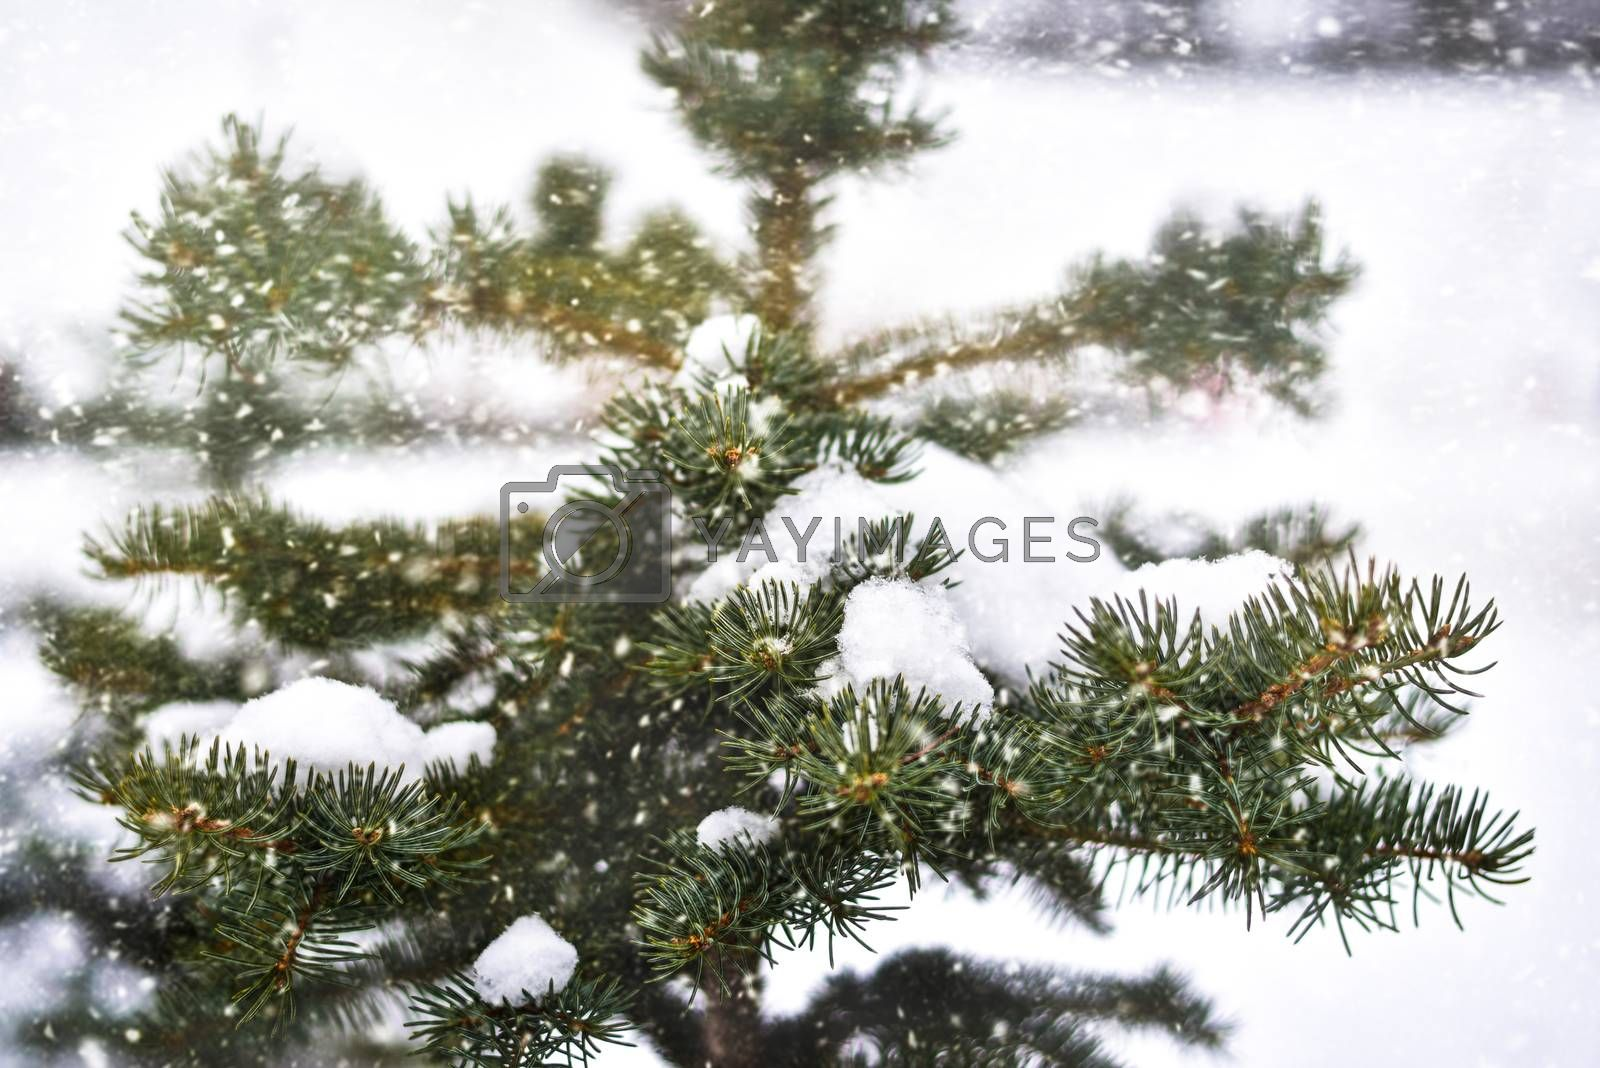 Snowy tree in the park, winter season, cold , christmas